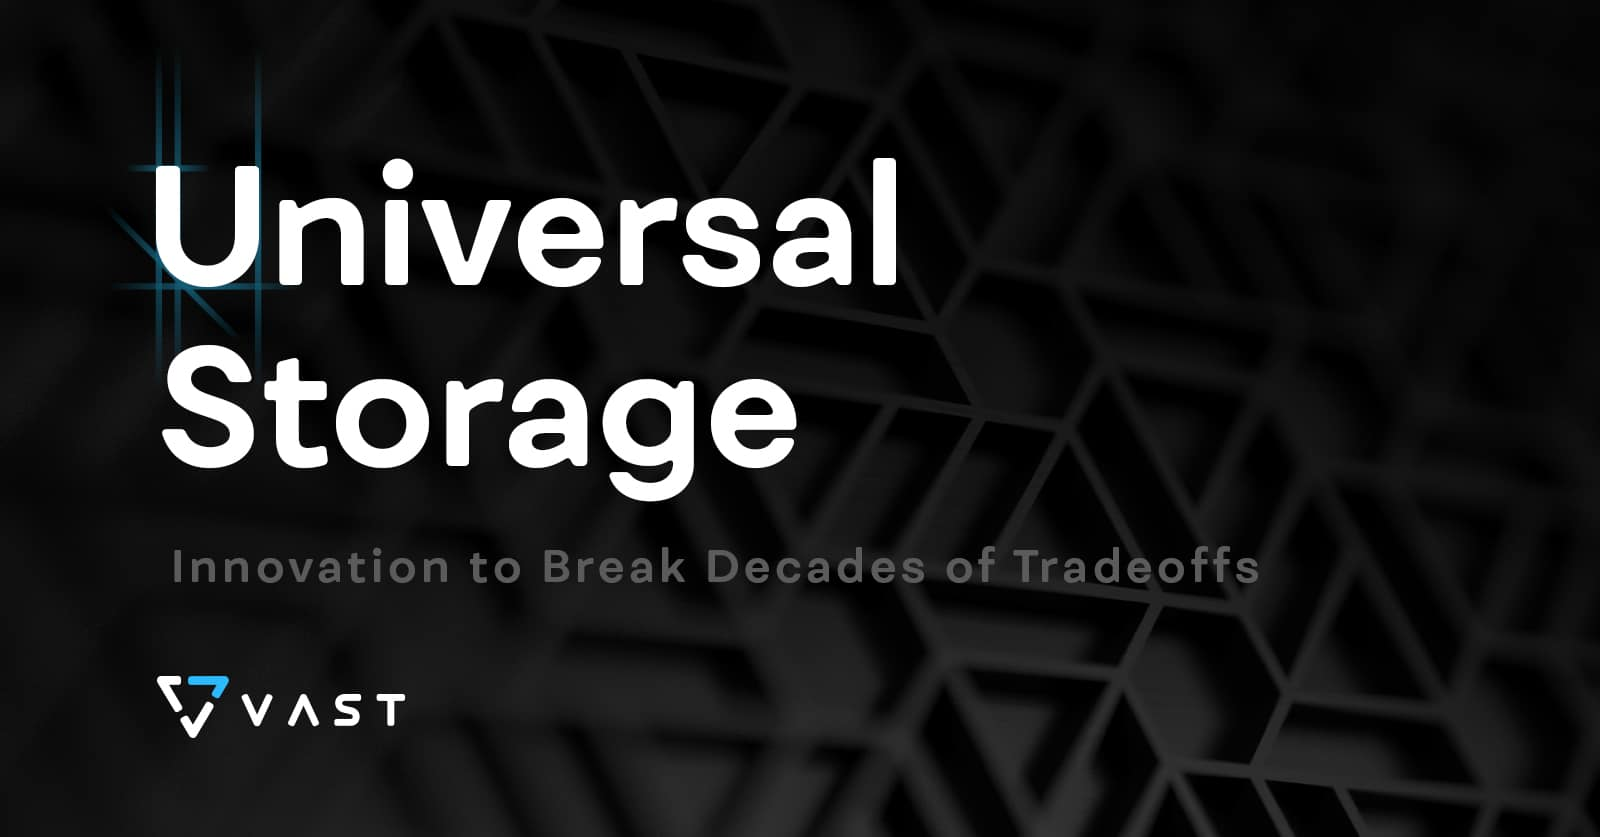 Universal Storage Overview